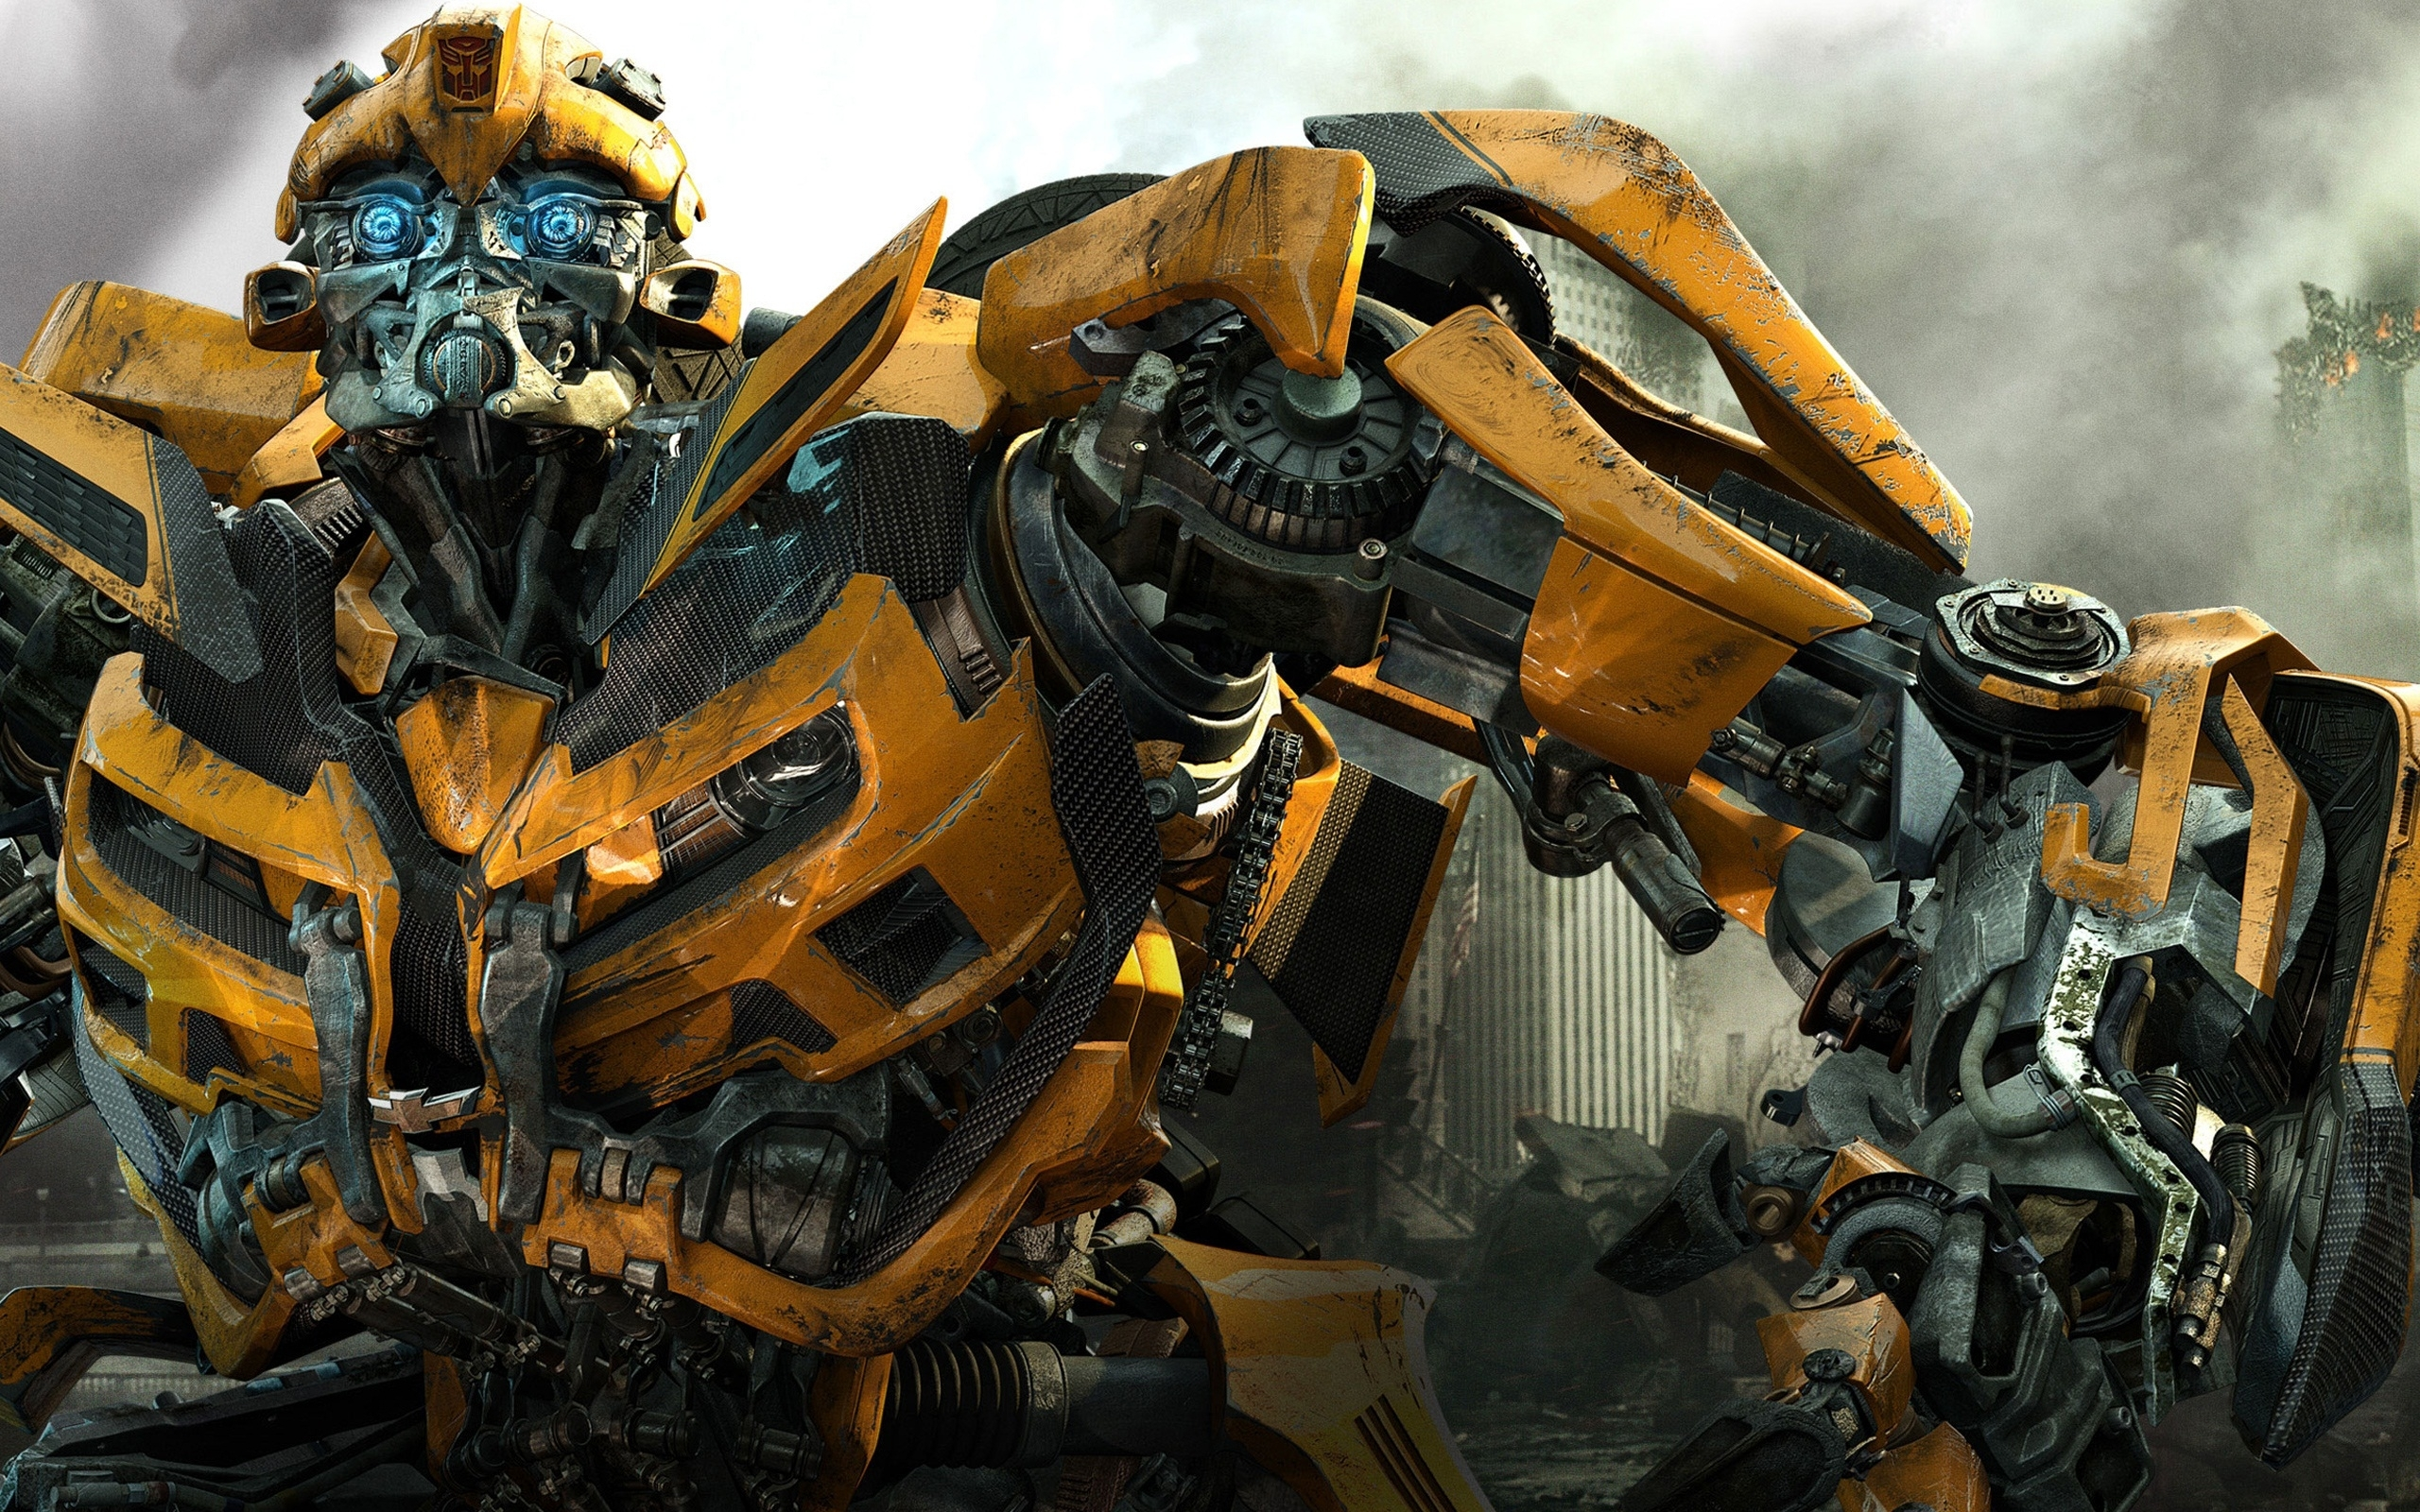 transformers 3 bumblebee wallpapers   hd wallpapers   id #9585